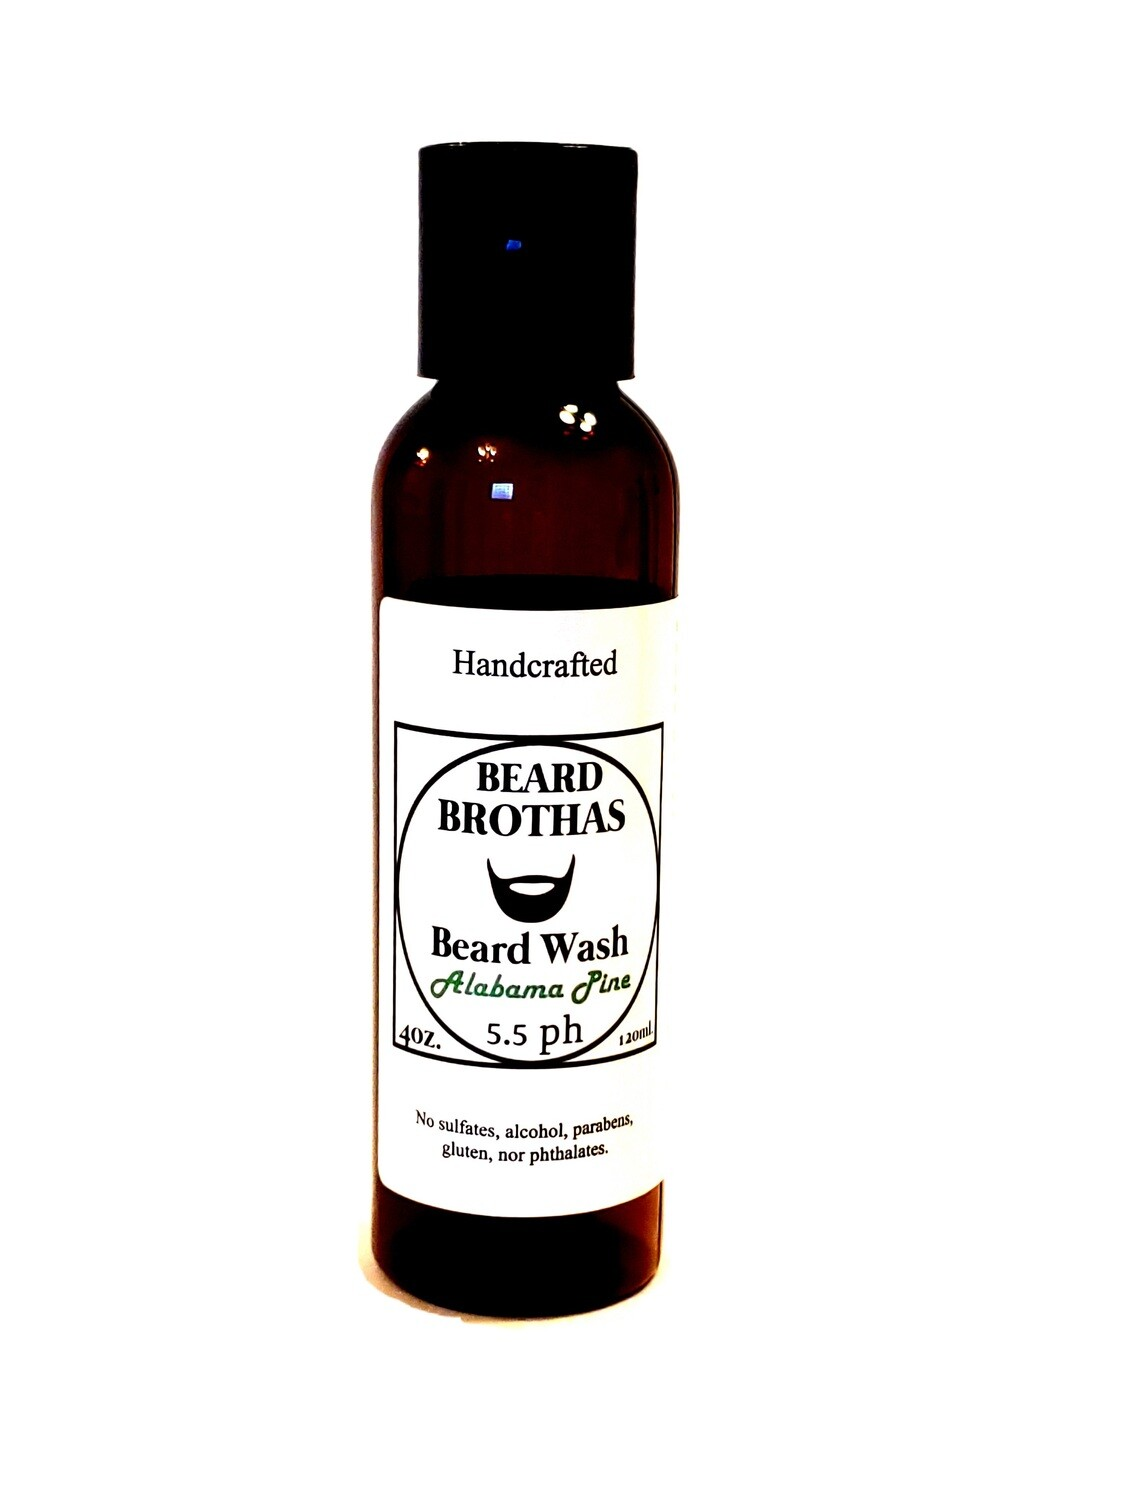 Beard Brothas Beard Wash. Sulfate Free. Alabama Pine Scent